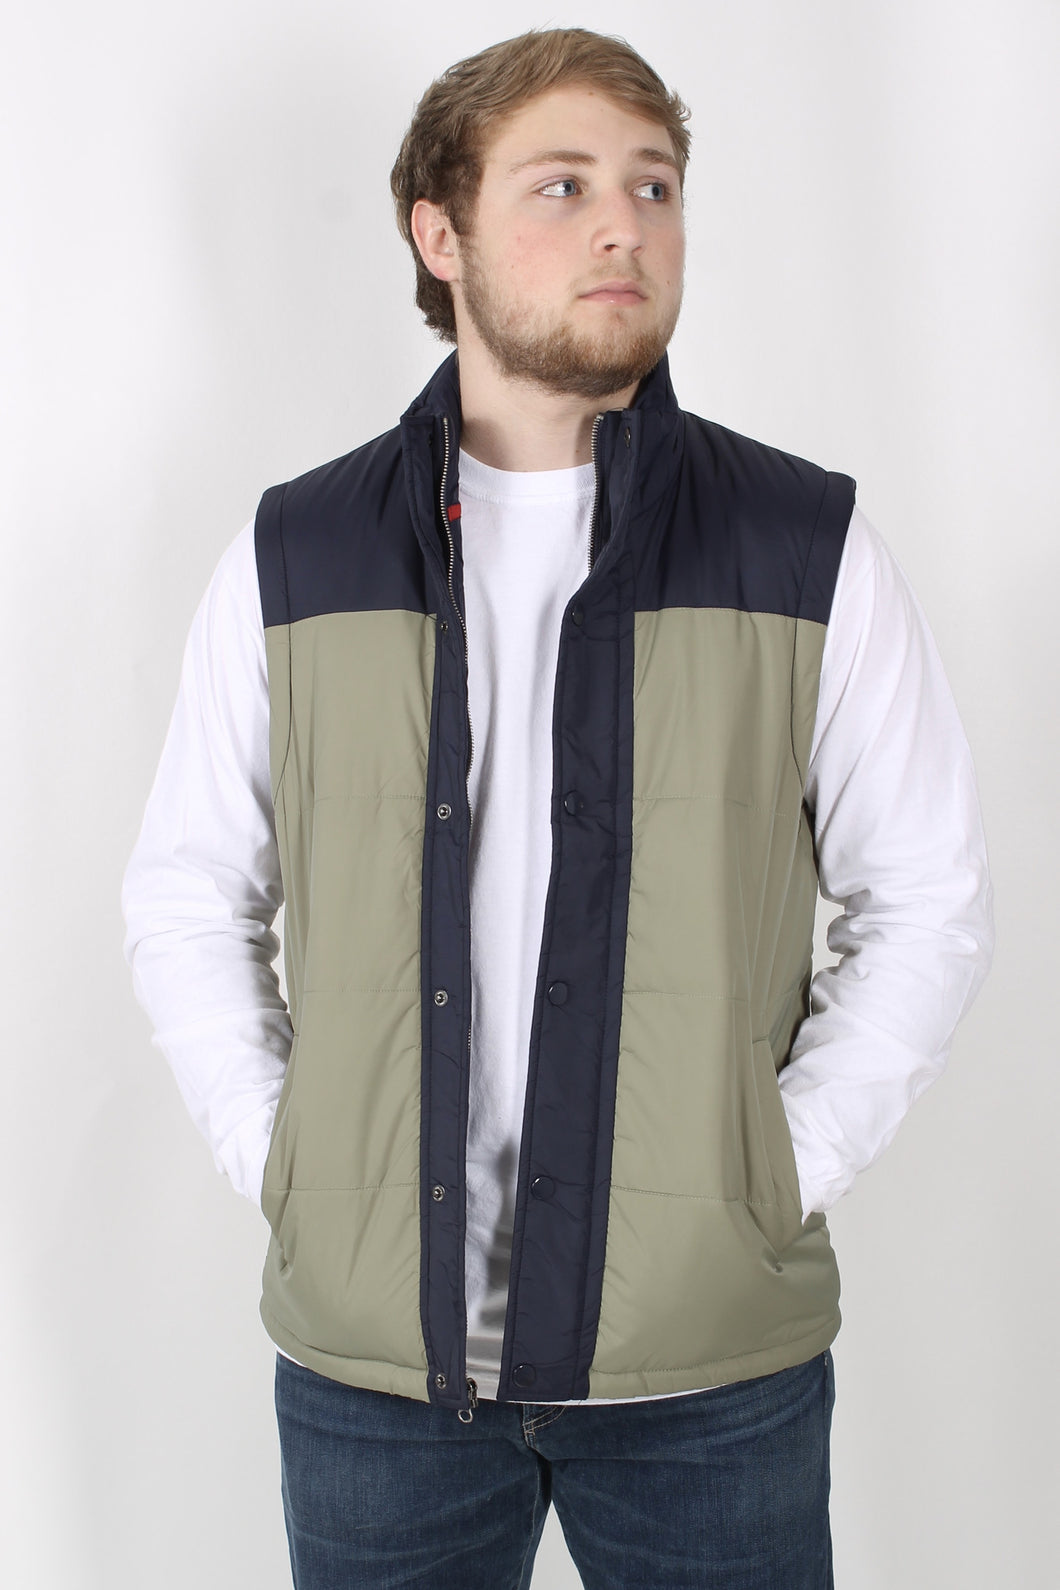 Green/Navy Vest- Southern Proper Campground Vest Front